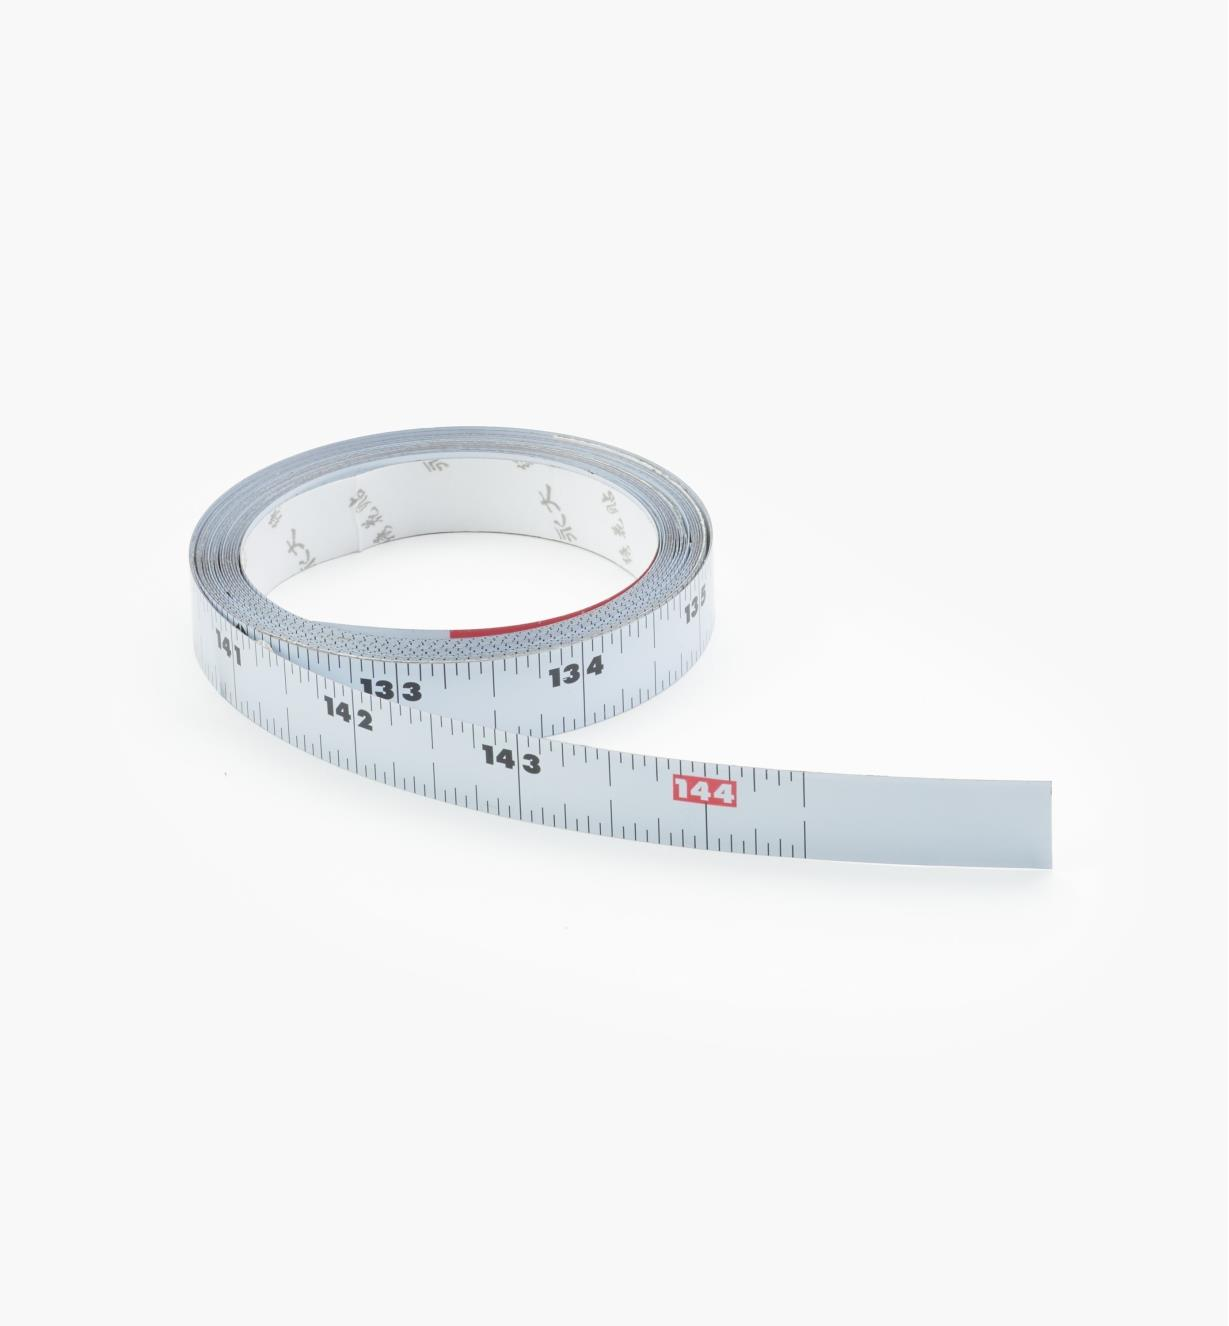 25U0240 - Center-Finding Adhesive Bench Tape, 12' x 1/2""